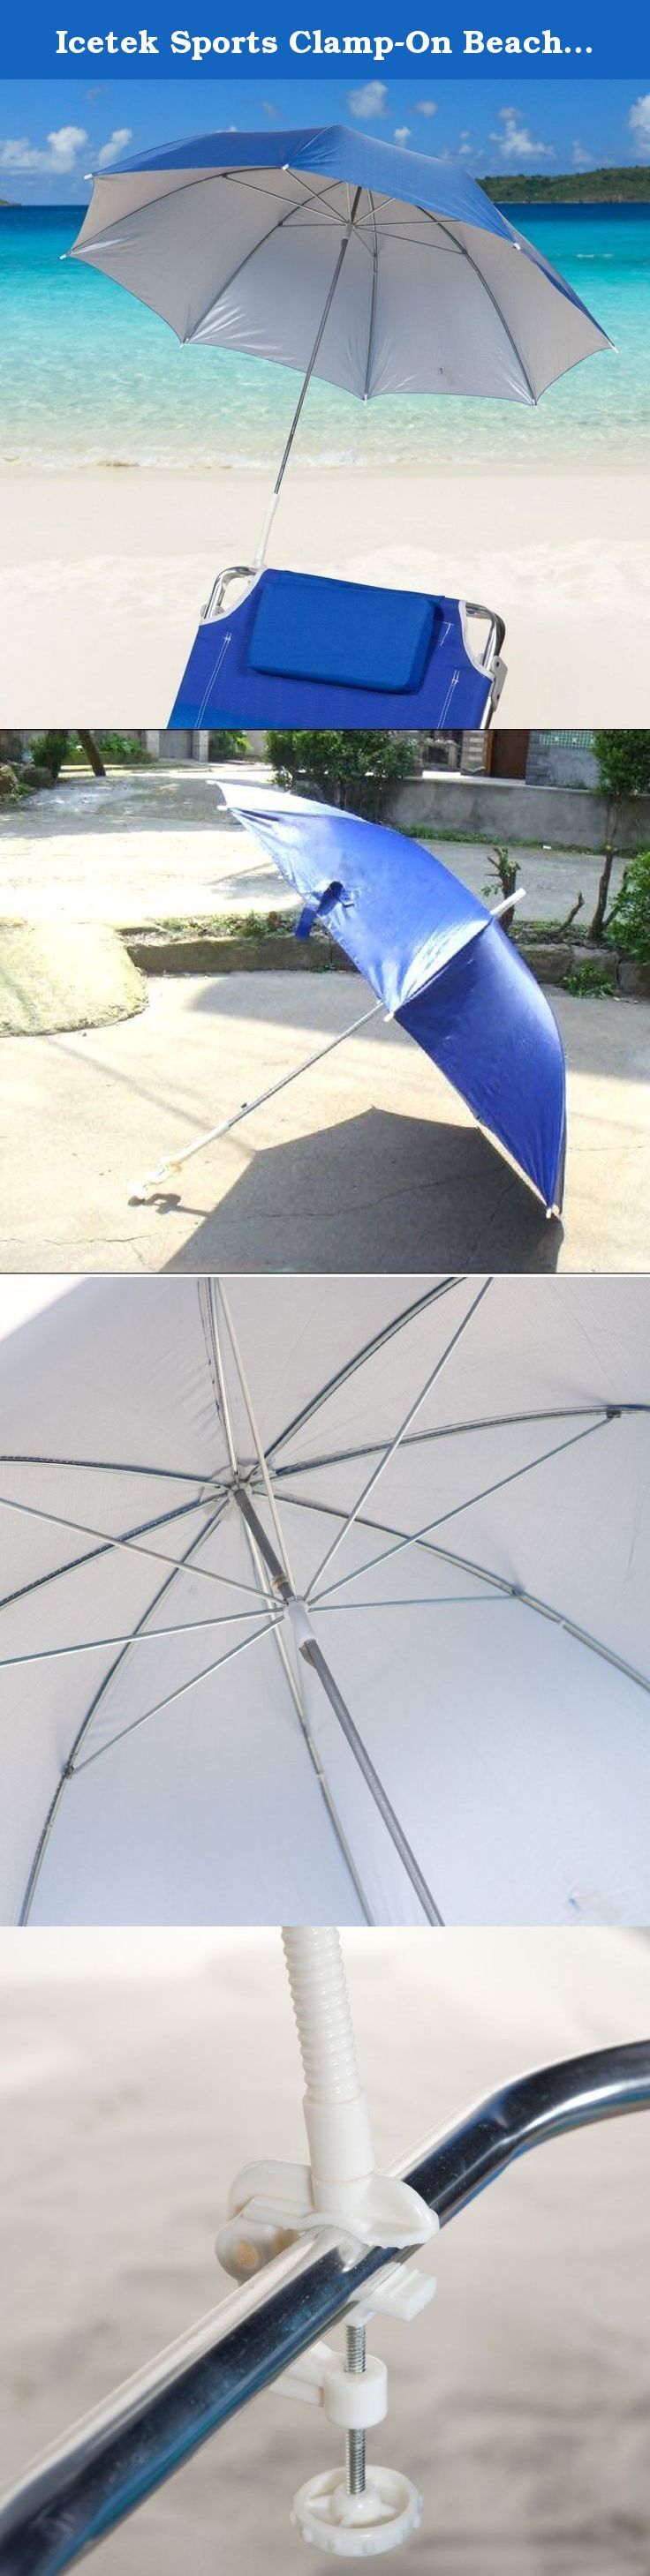 """Icetek Sports Clamp-On Beach Umbrella, Blue. You're made in the shade! icetek clamp-on umbrellas go where you go...to the pool, the beach, the Park, camping. They easily clamp-on to a chair, table, anywhere you need a little shade & some spf-50 sun protection. They open to a full 41"""" plus."""